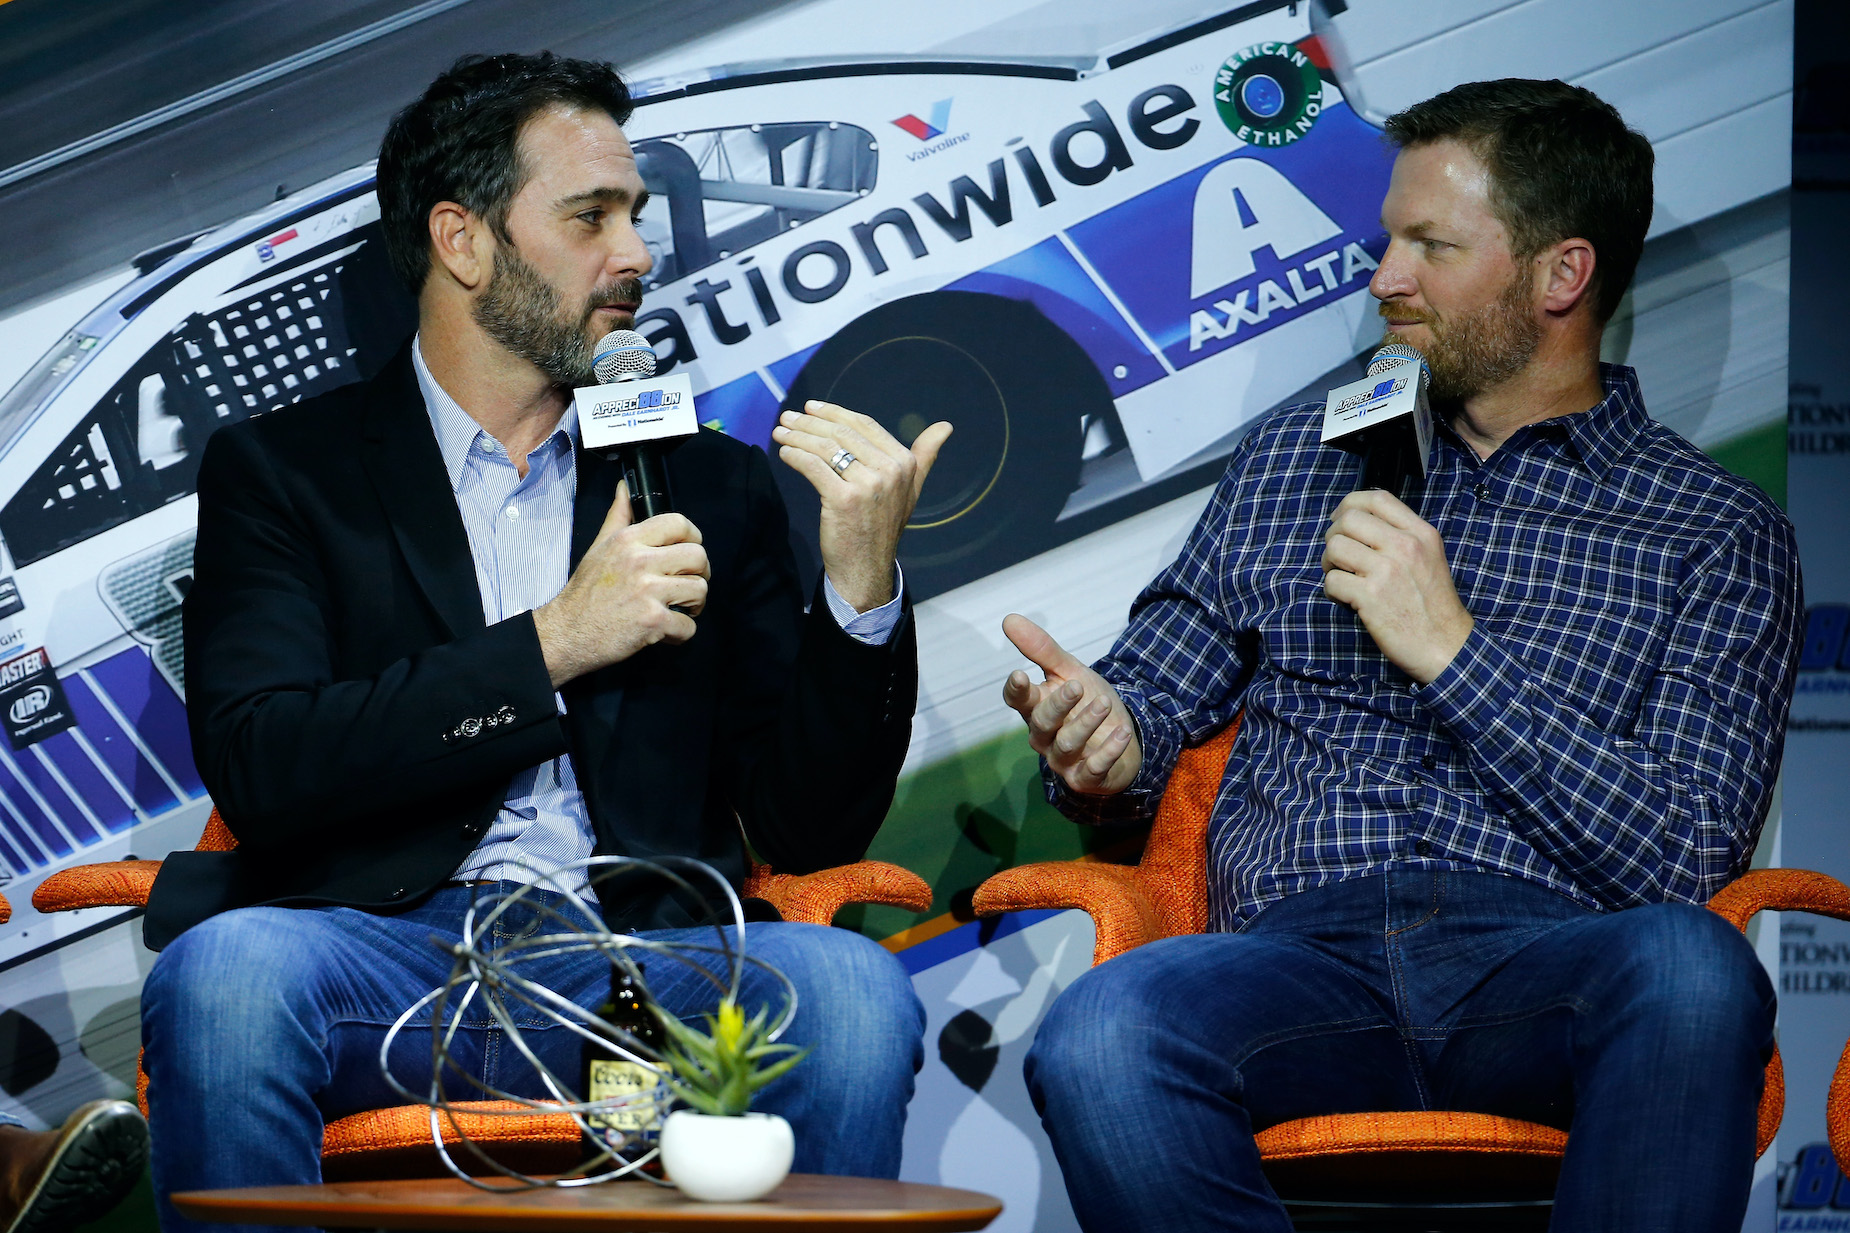 NASCAR drivers Jimmie Johnson (L) and Dale Earnhardt Jr. (R) talk at a 2017 event in Las Vegas.